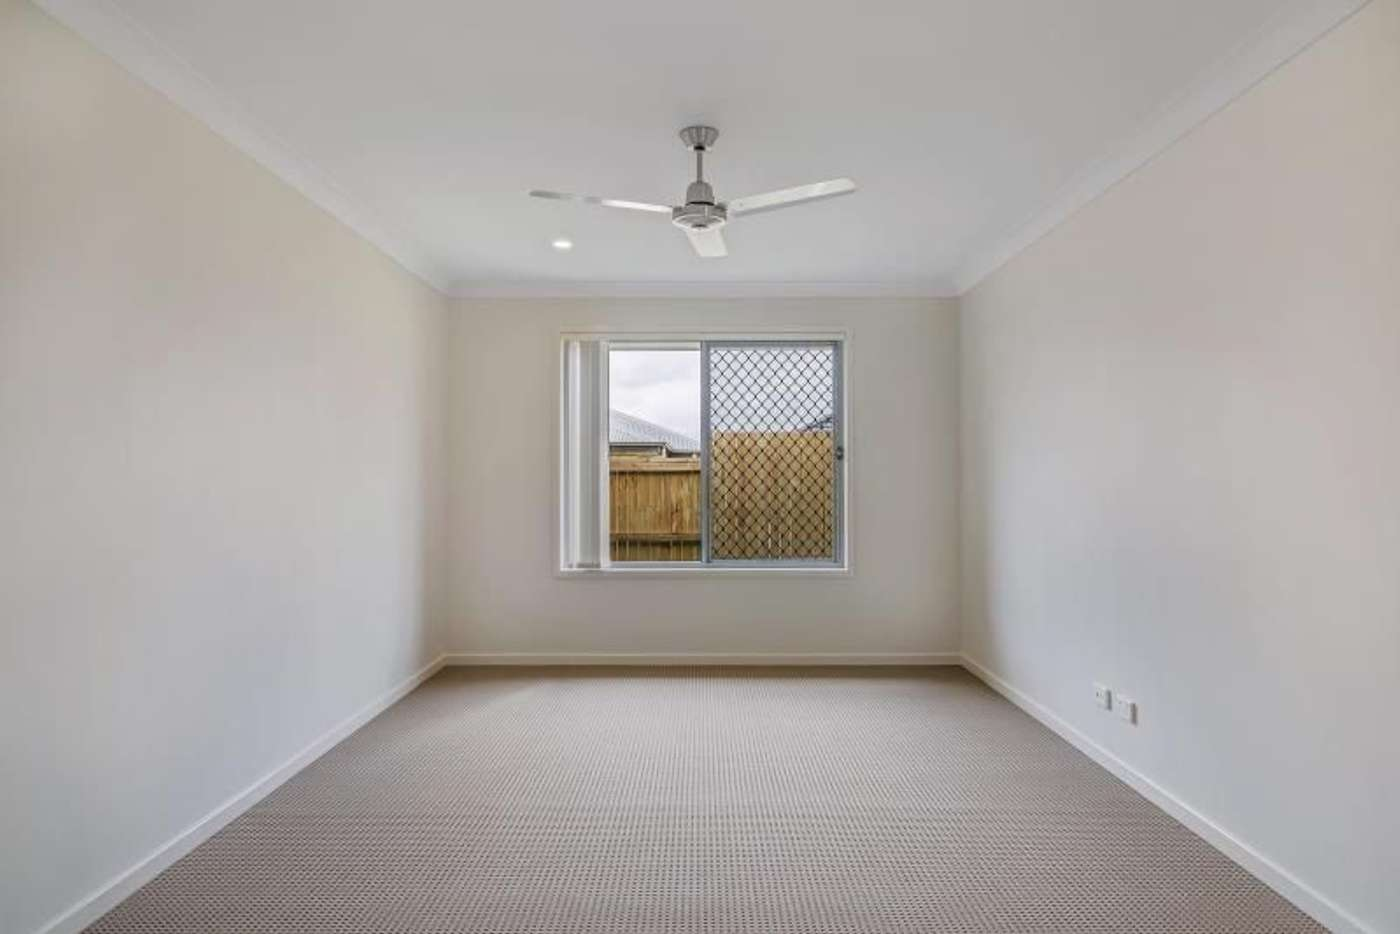 Fifth view of Homely house listing, 4 Tirrel Street, Yarrabilba QLD 4207